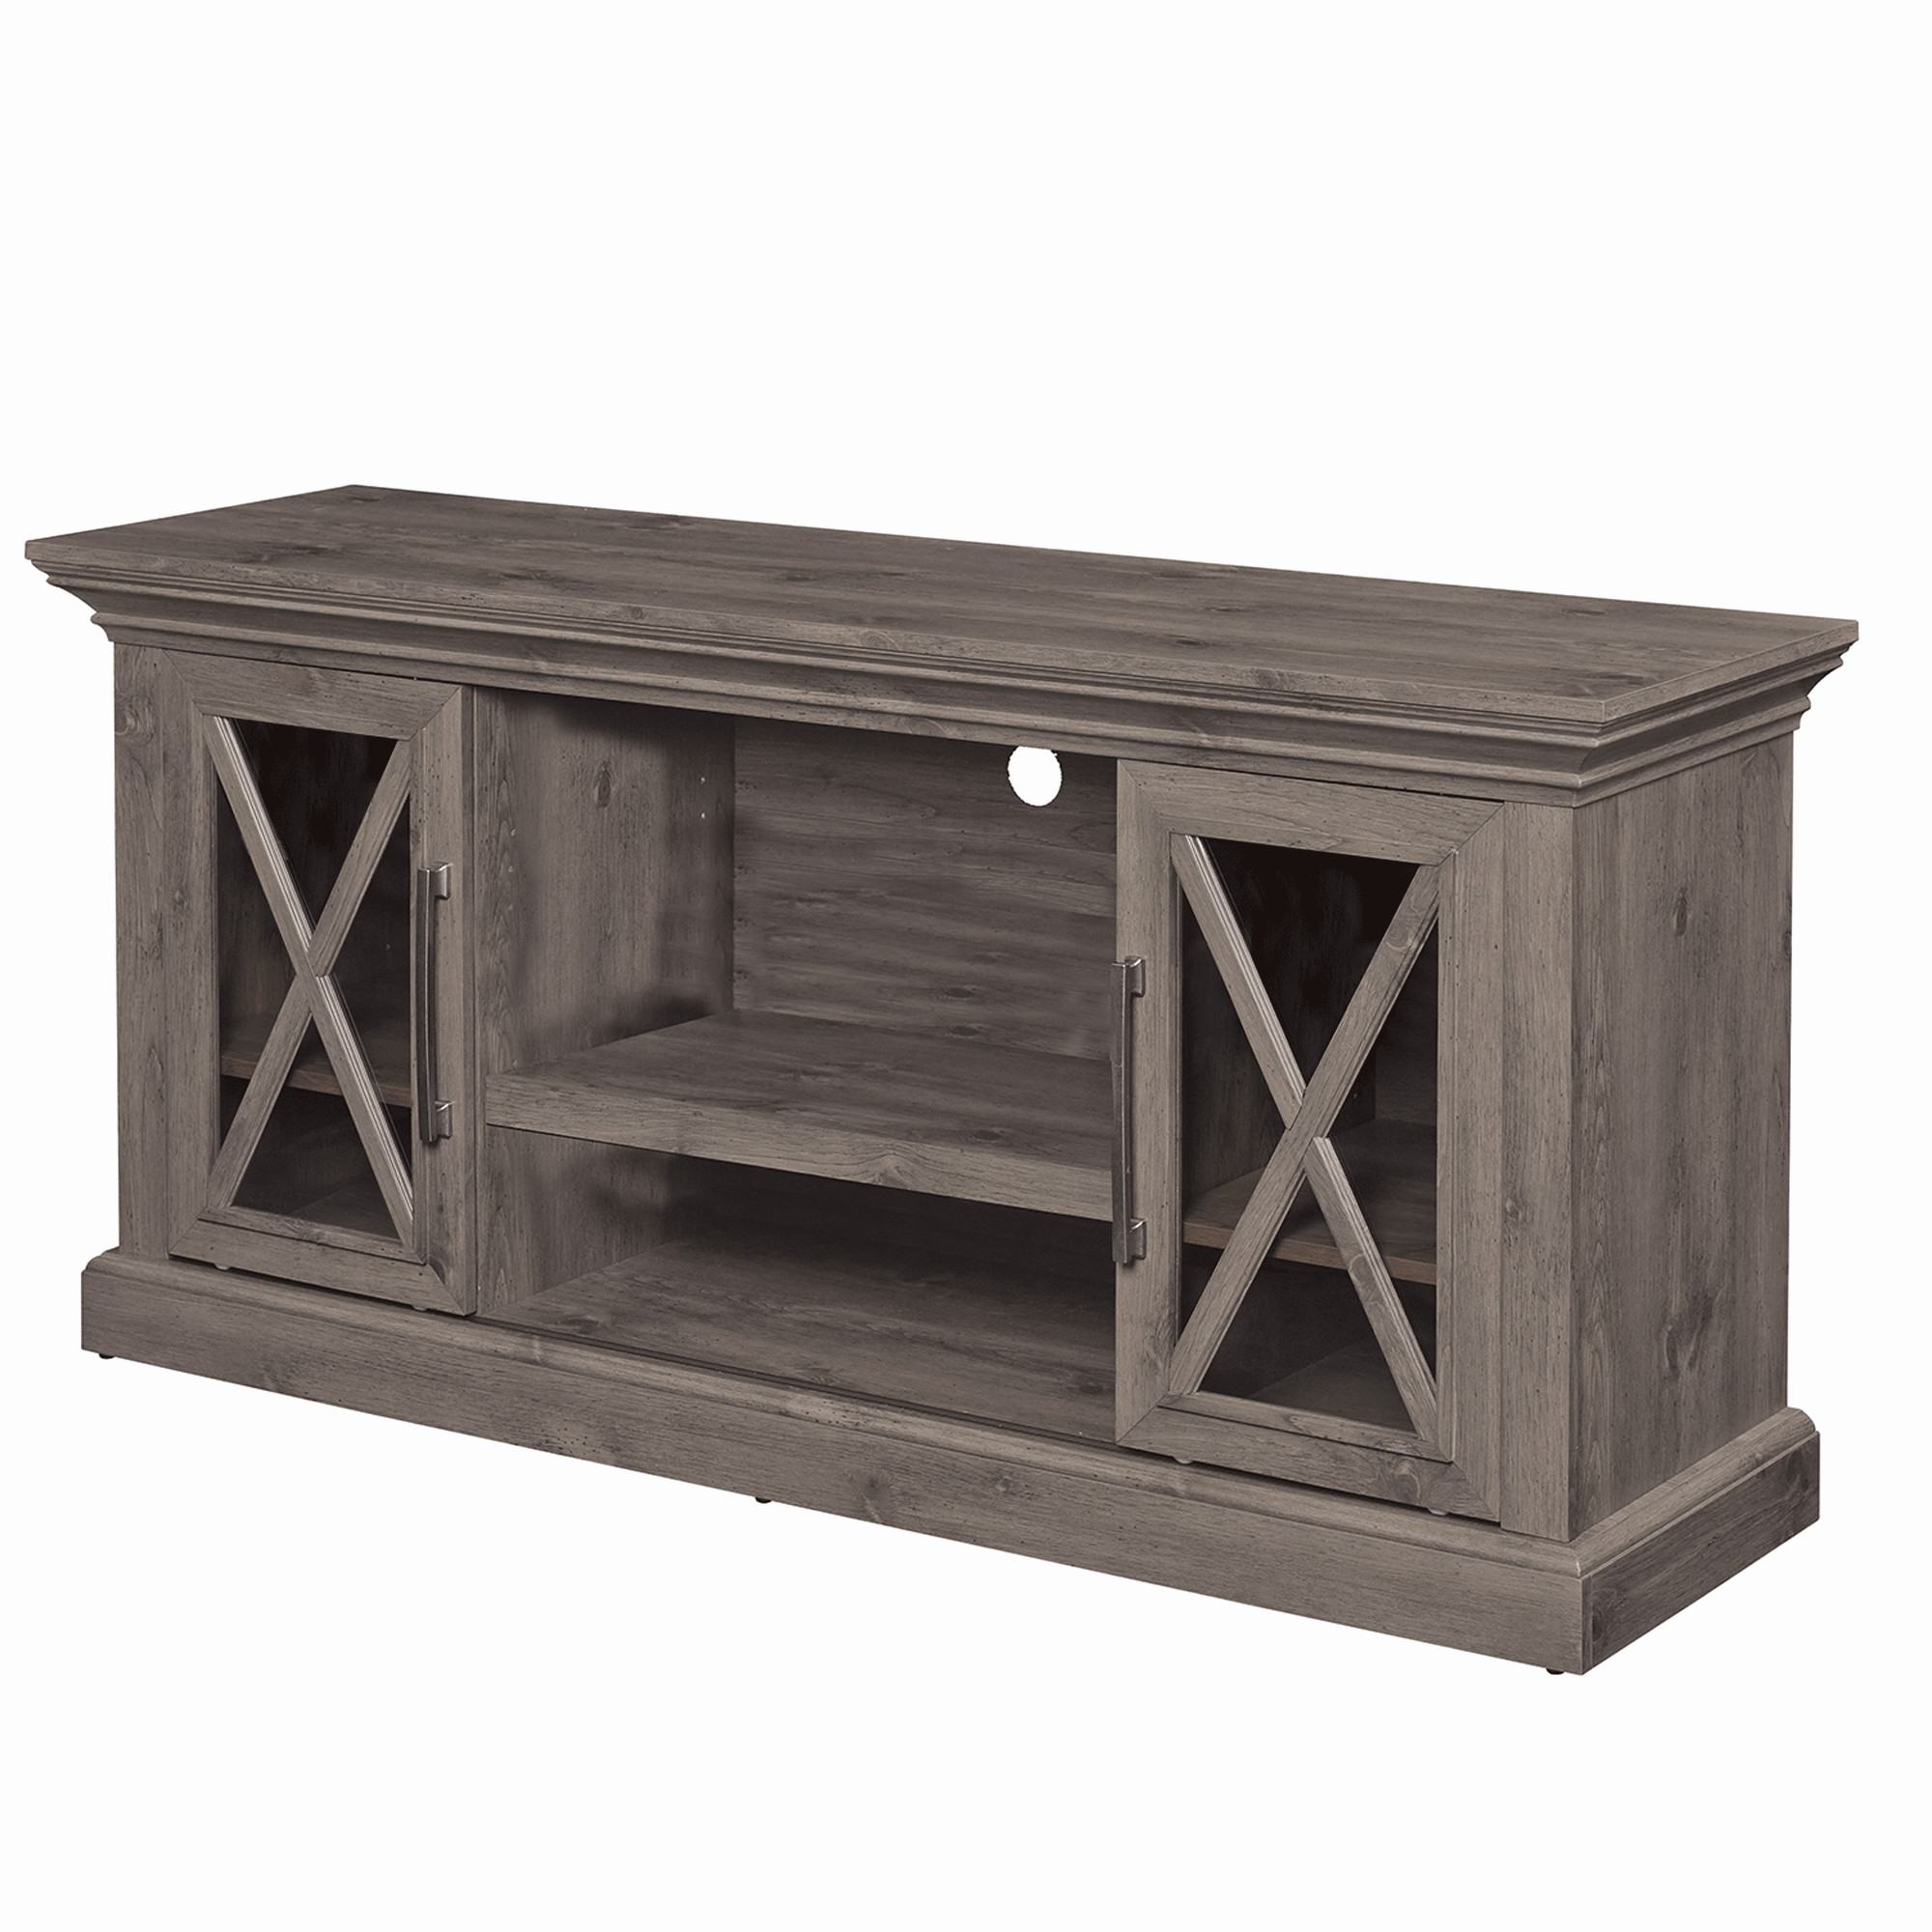 13 Stunning 65 Inch Tv Stand For Your New Living Room For Jaxon 65 Inch Tv Stands (View 16 of 20)